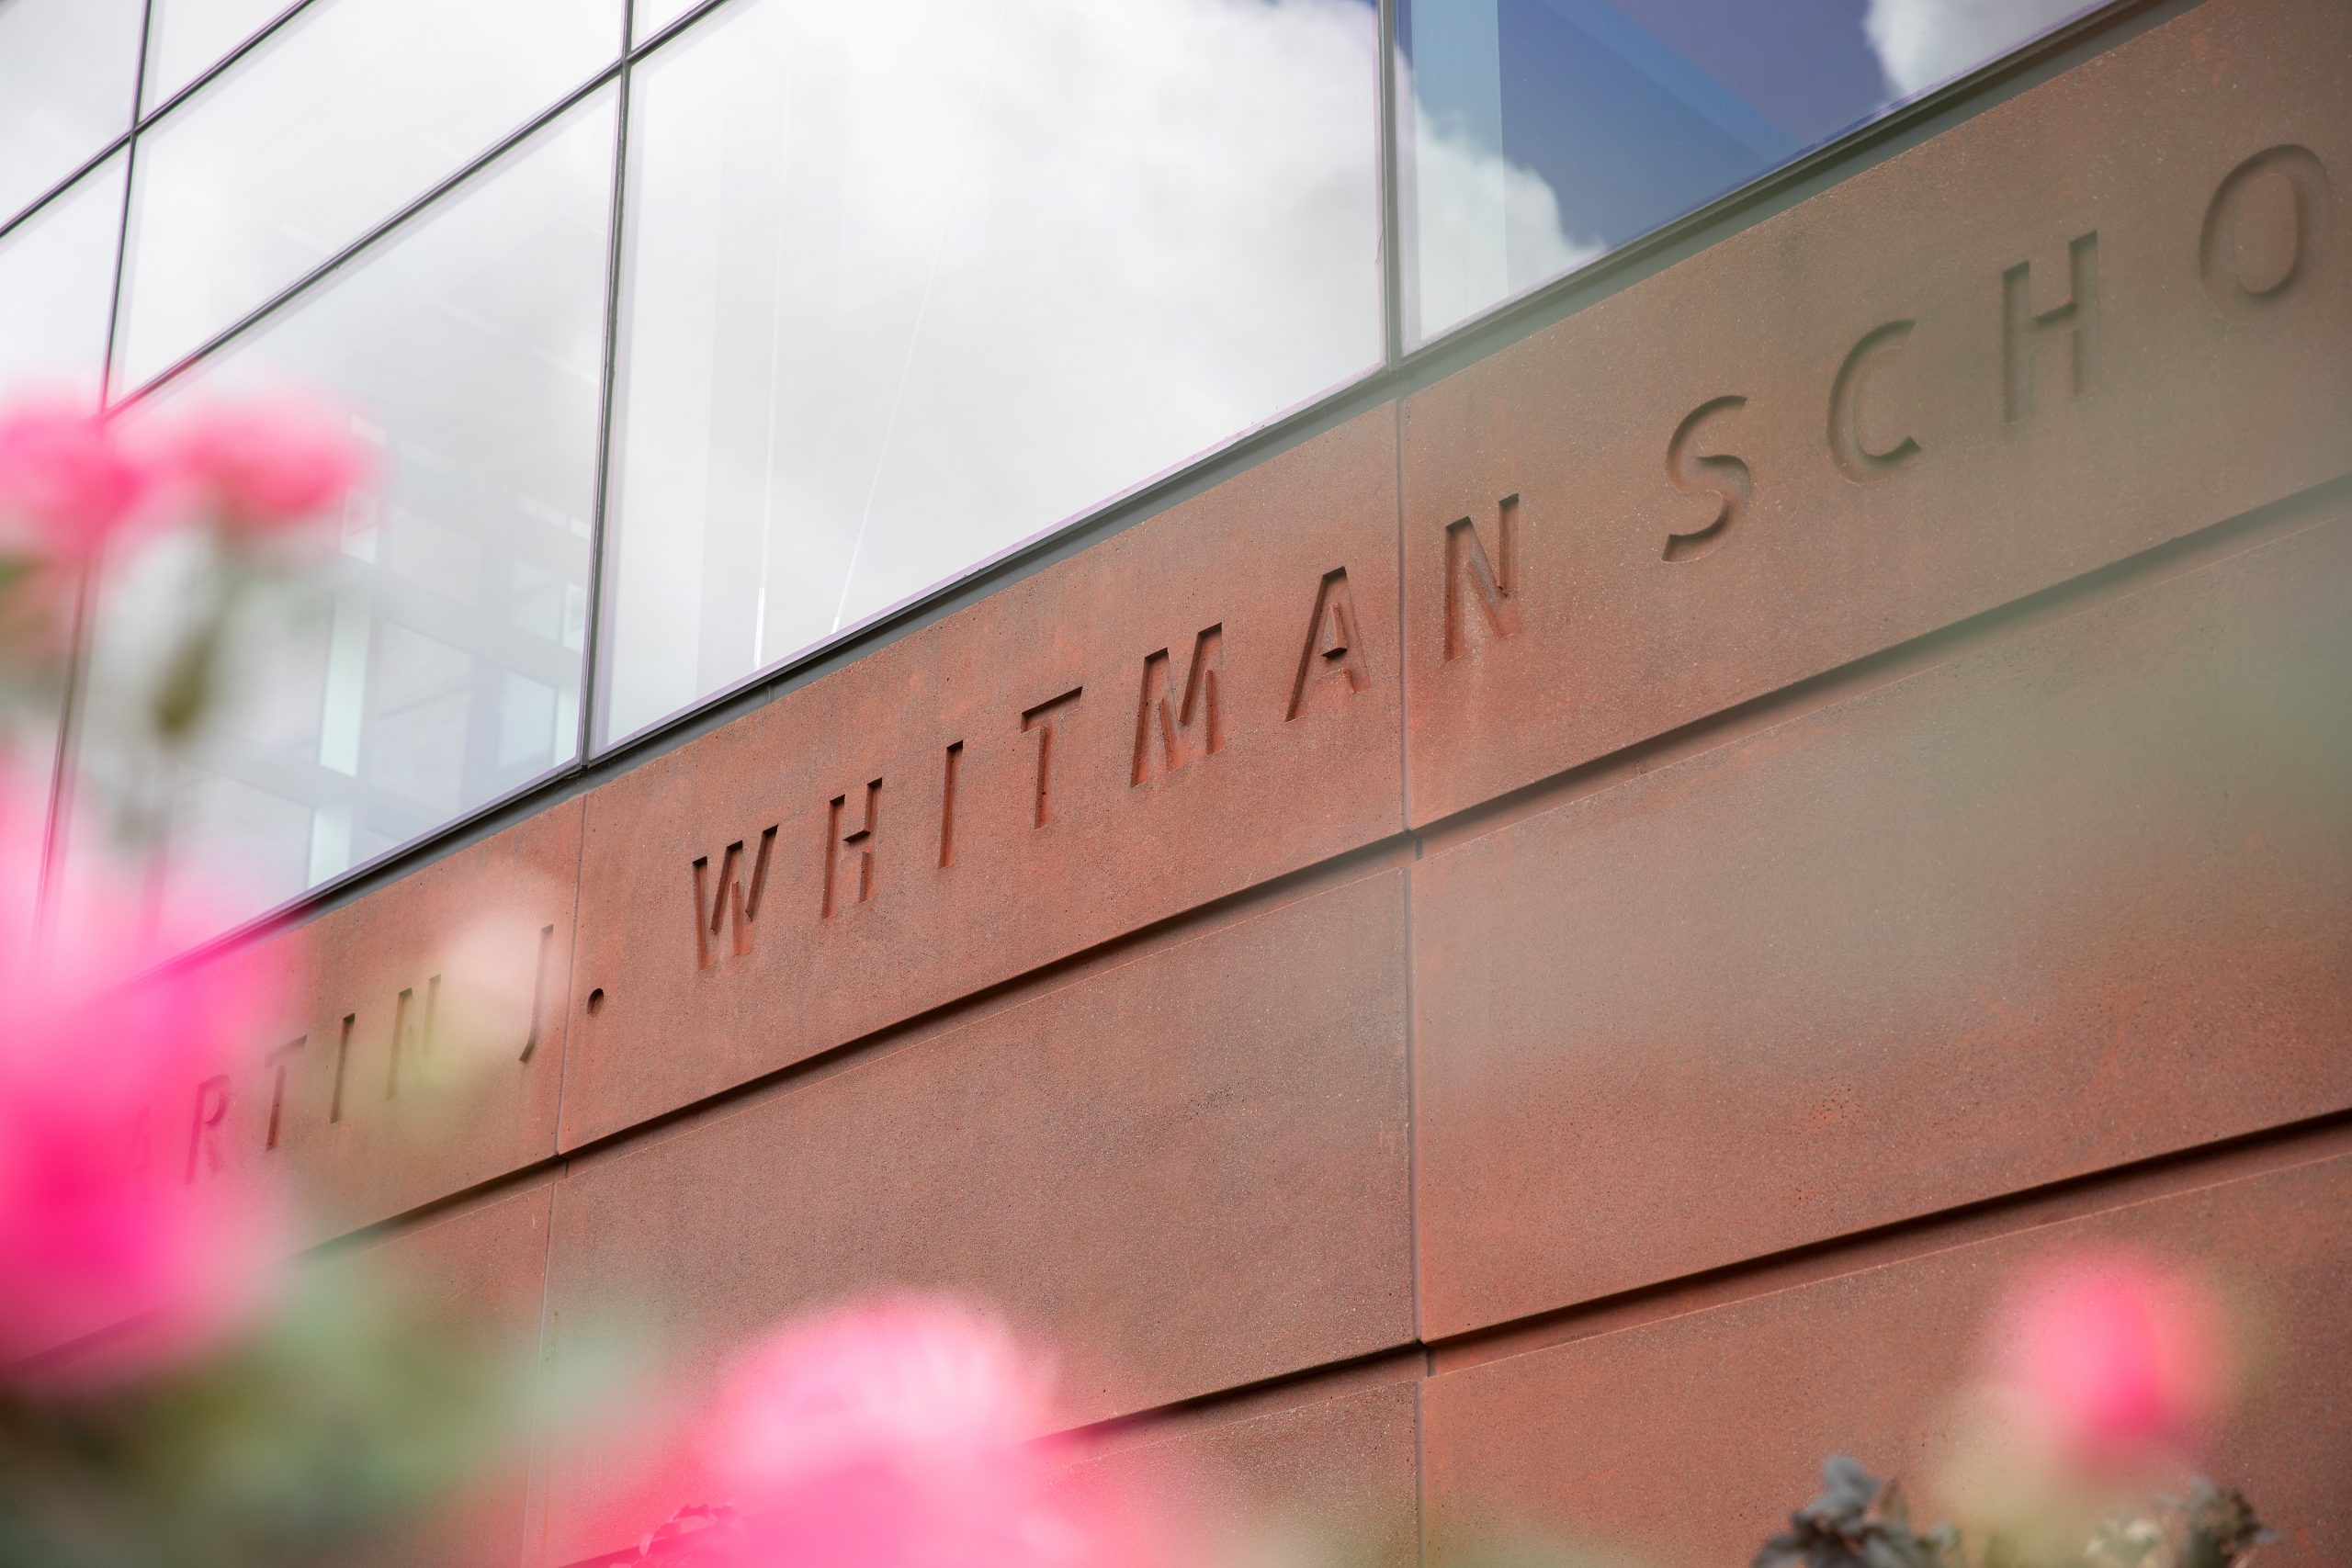 The building name carved into the front of Whitman School of Management is surrounded by landscaping.